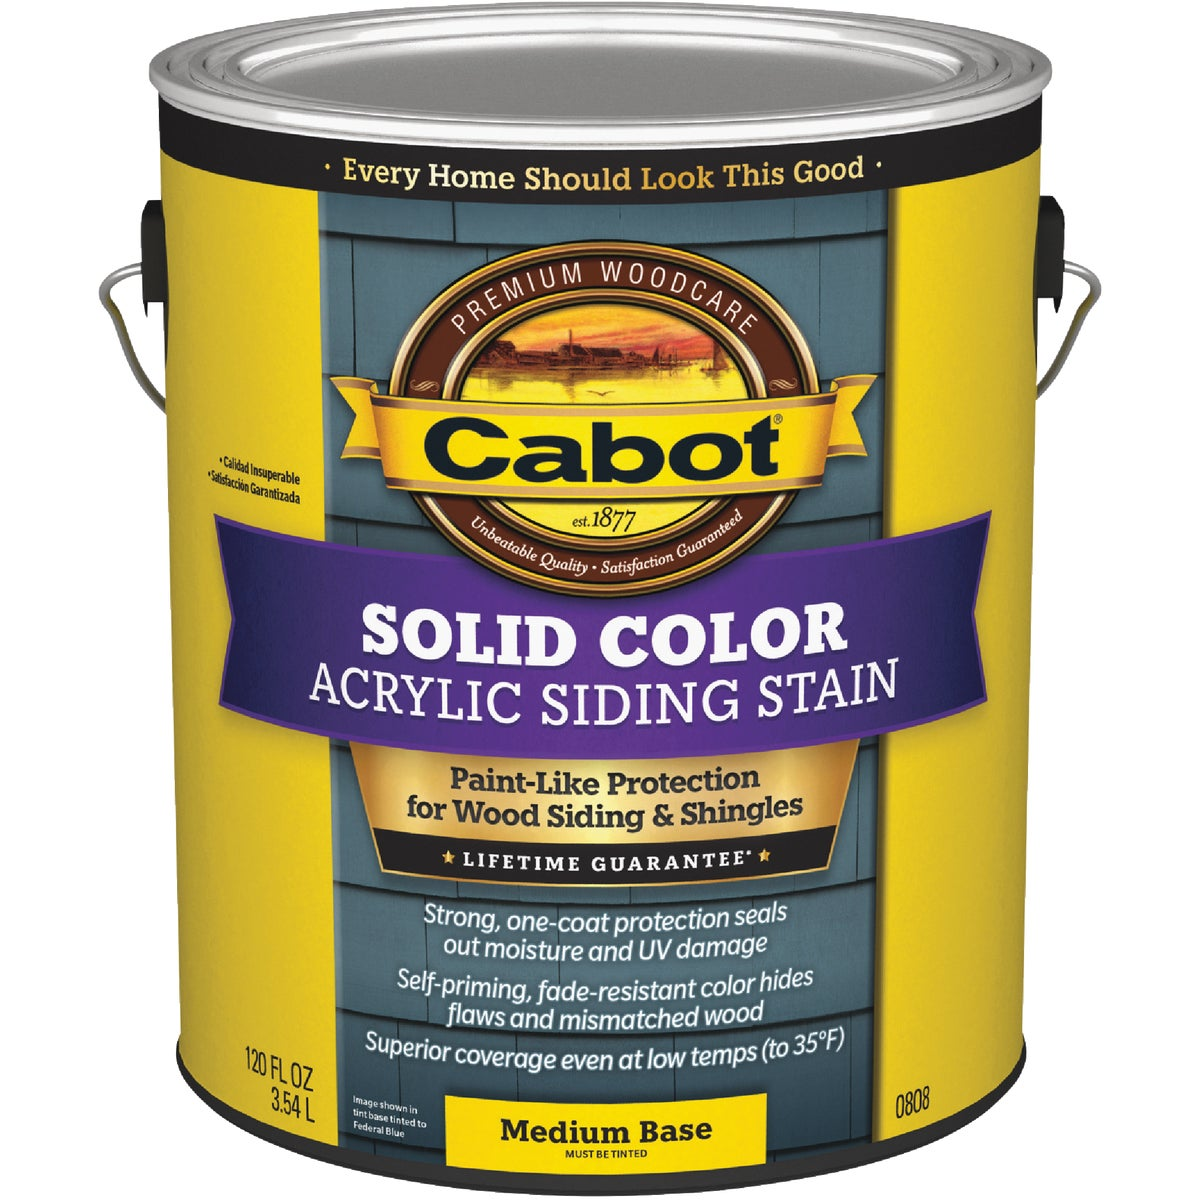 MED BS PRO SOLID STAIN - 140.0000808.007 by Valspar Corp